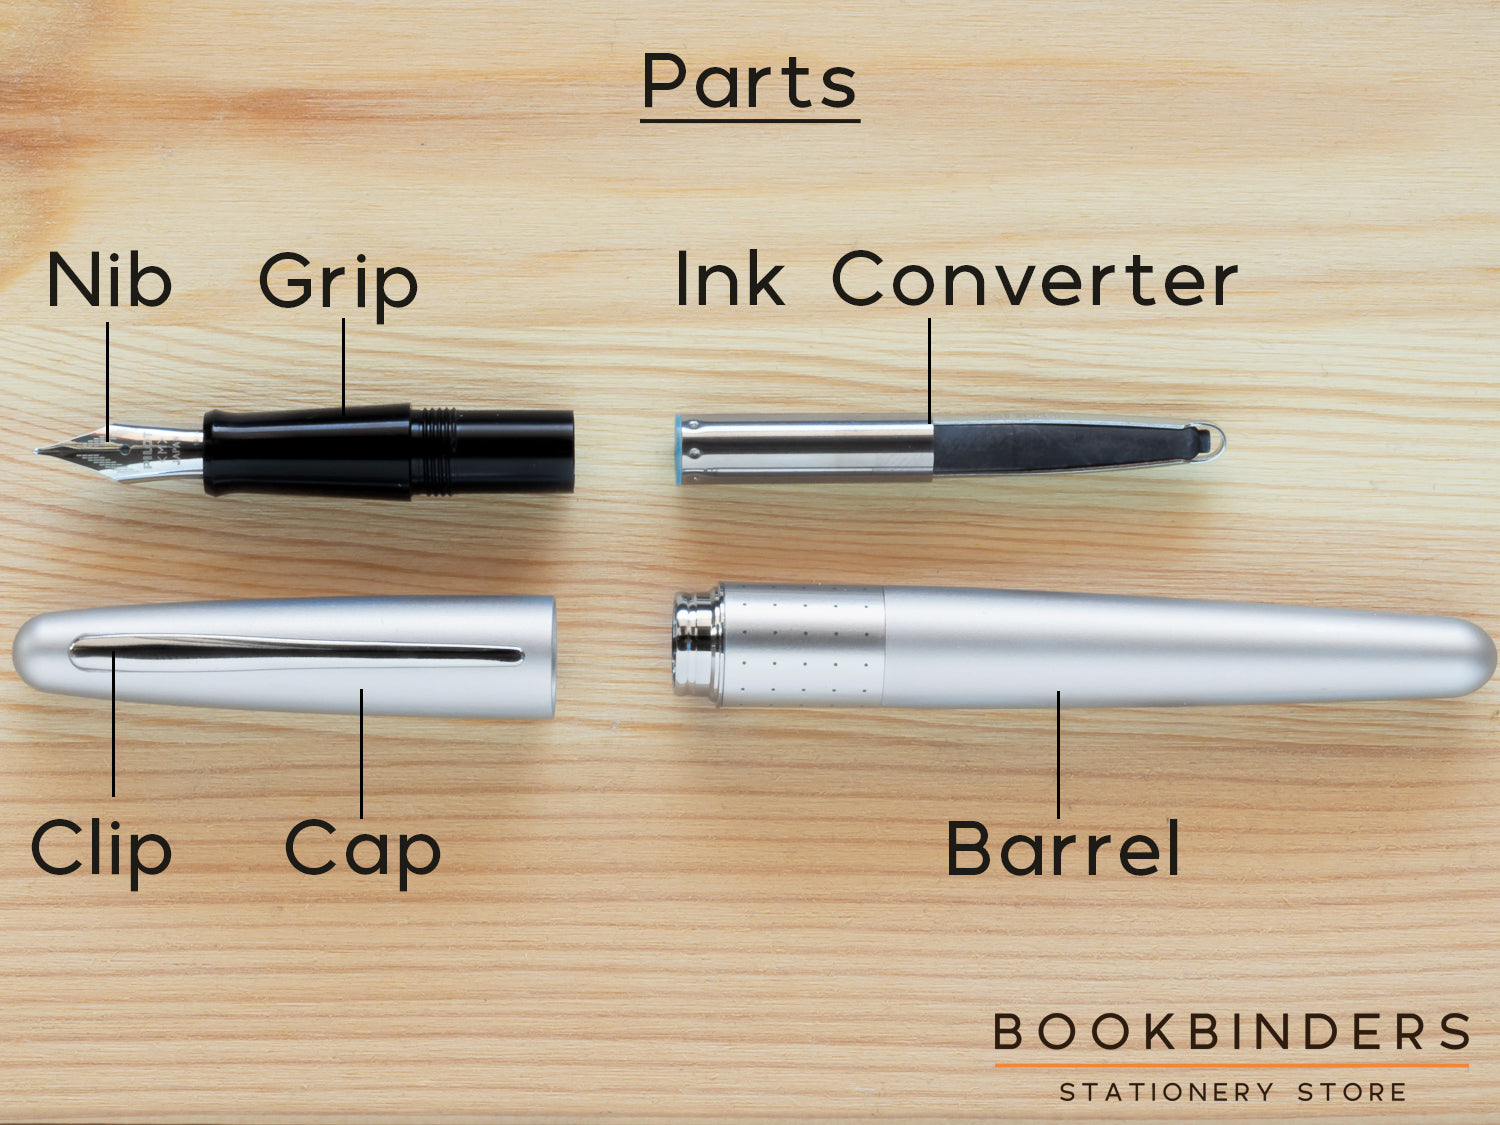 Anatomy of a Fountain Pen | Bookbinders Stationery Store Australia